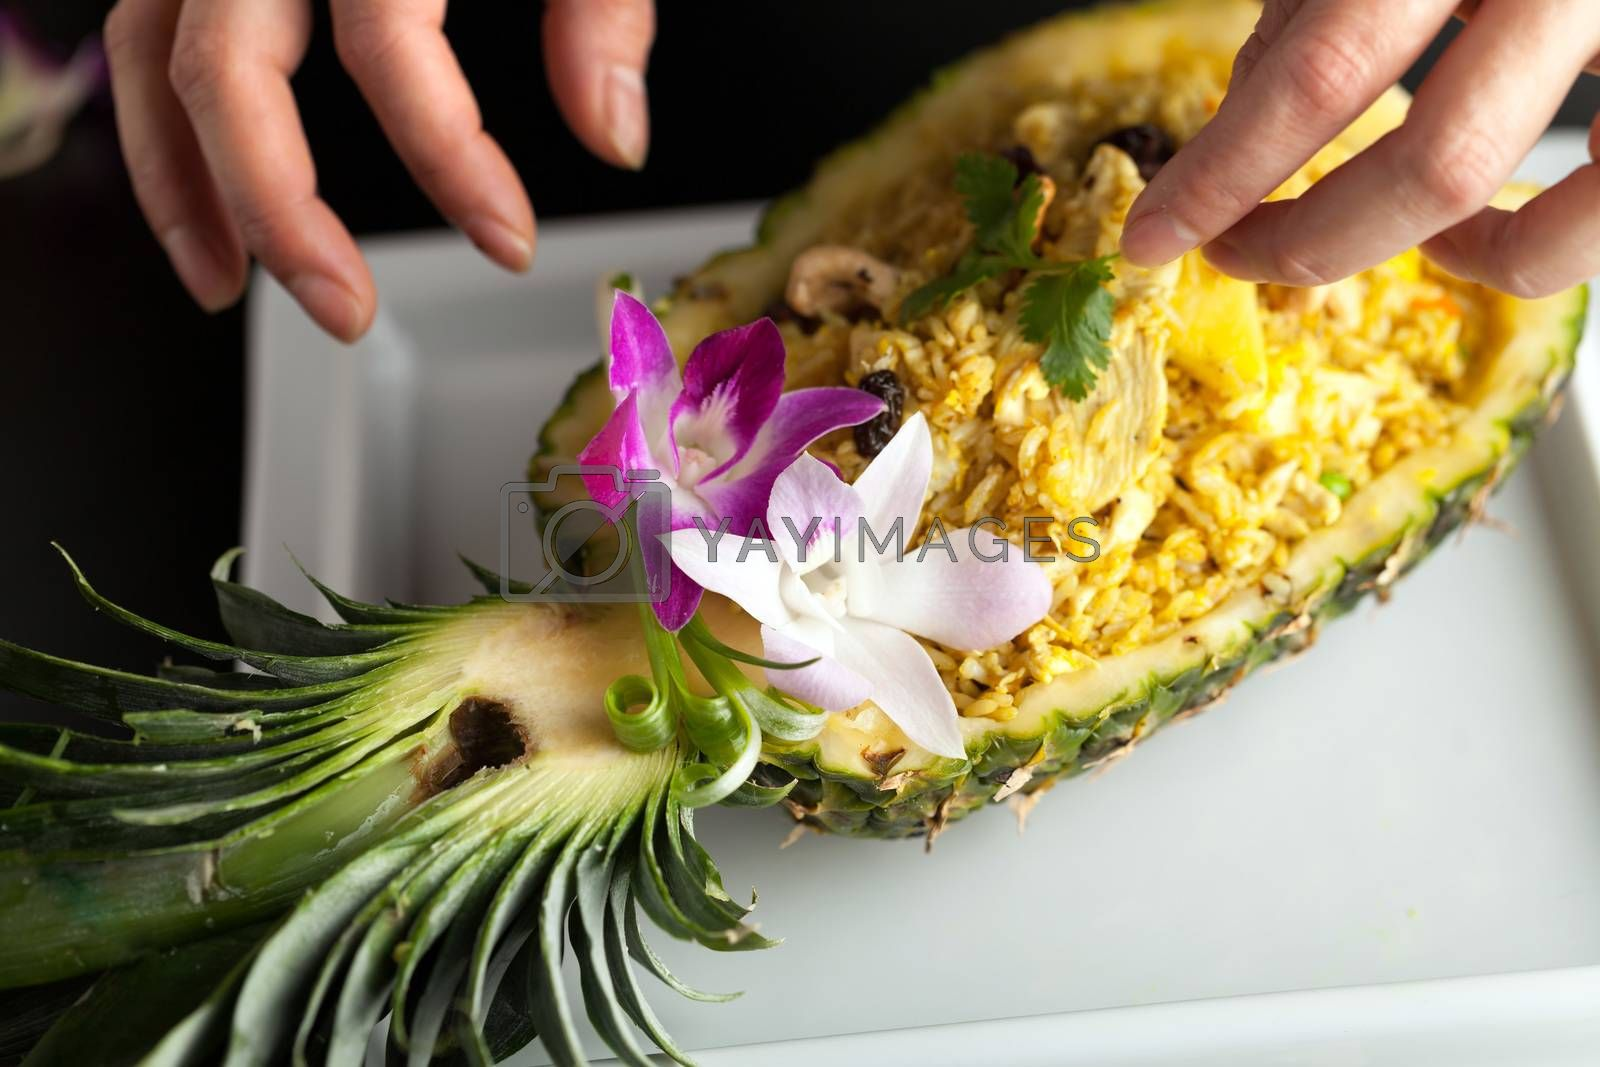 Freshly prepared pineapple fried rice served inside of a pineapple carved like a bowl. Food stylish is arranging garnish.